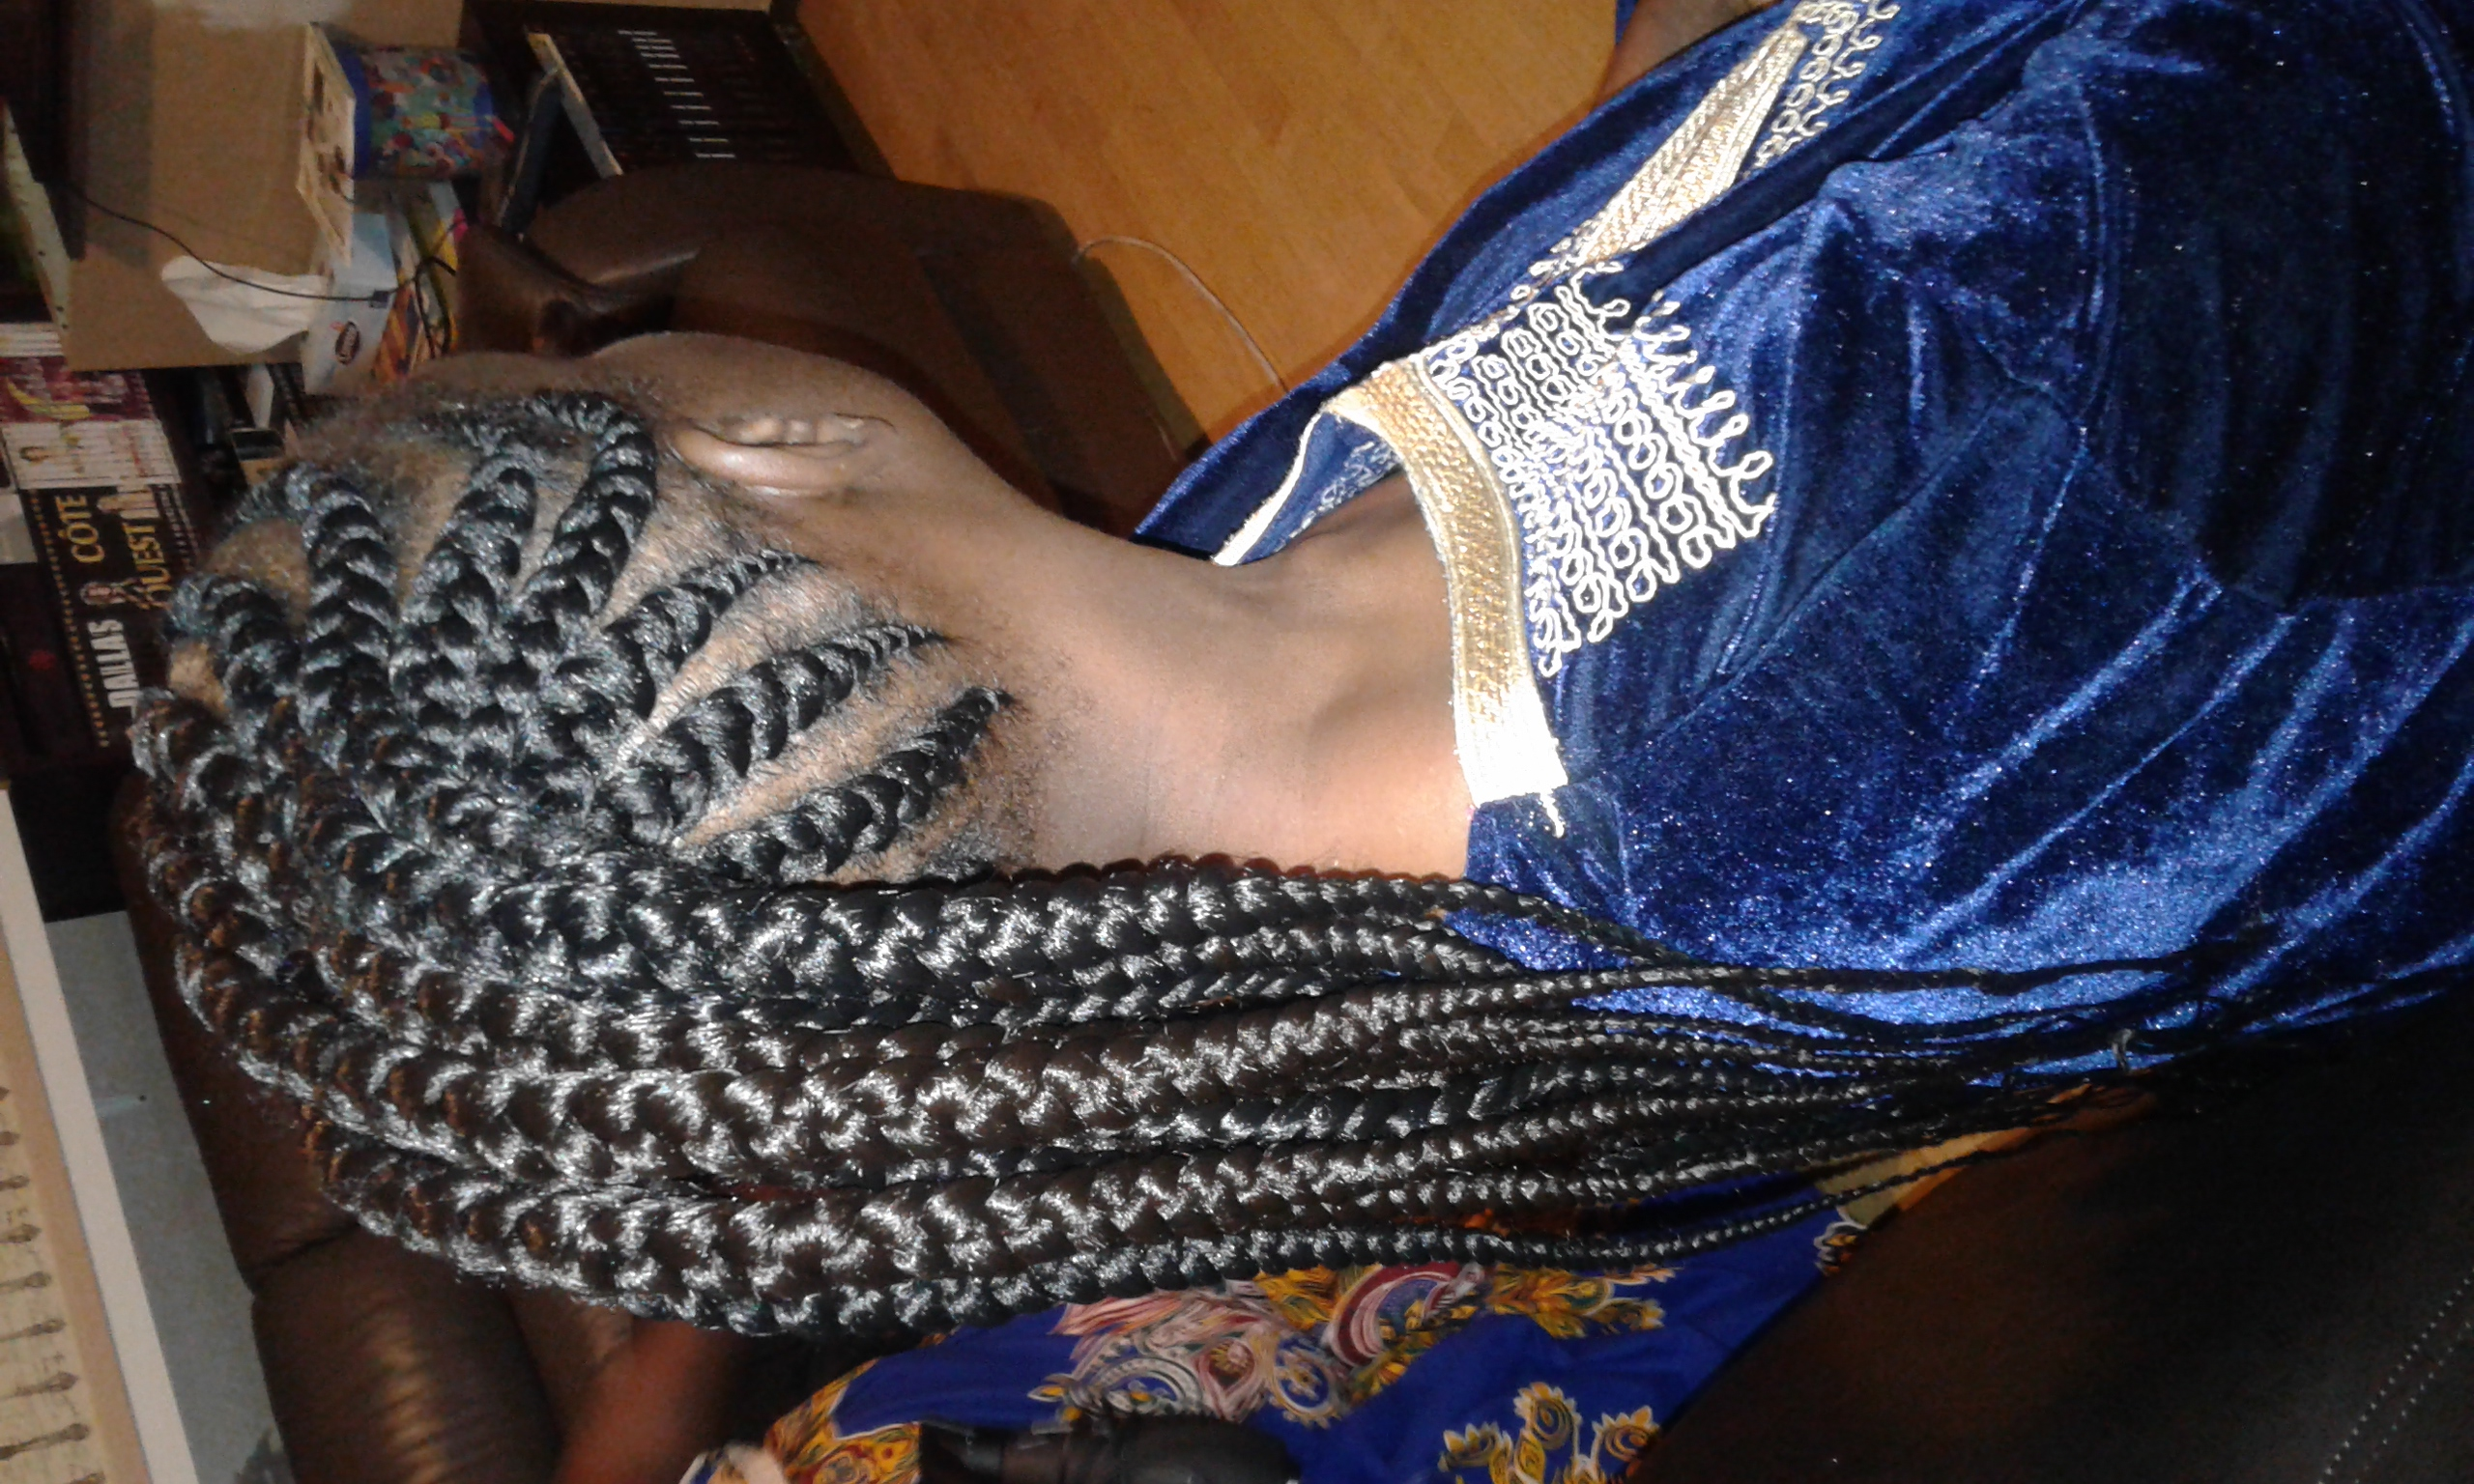 salon de coiffure afro tresse tresses box braids crochet braids vanilles tissages paris 75 77 78 91 92 93 94 95 LXSTOMOM